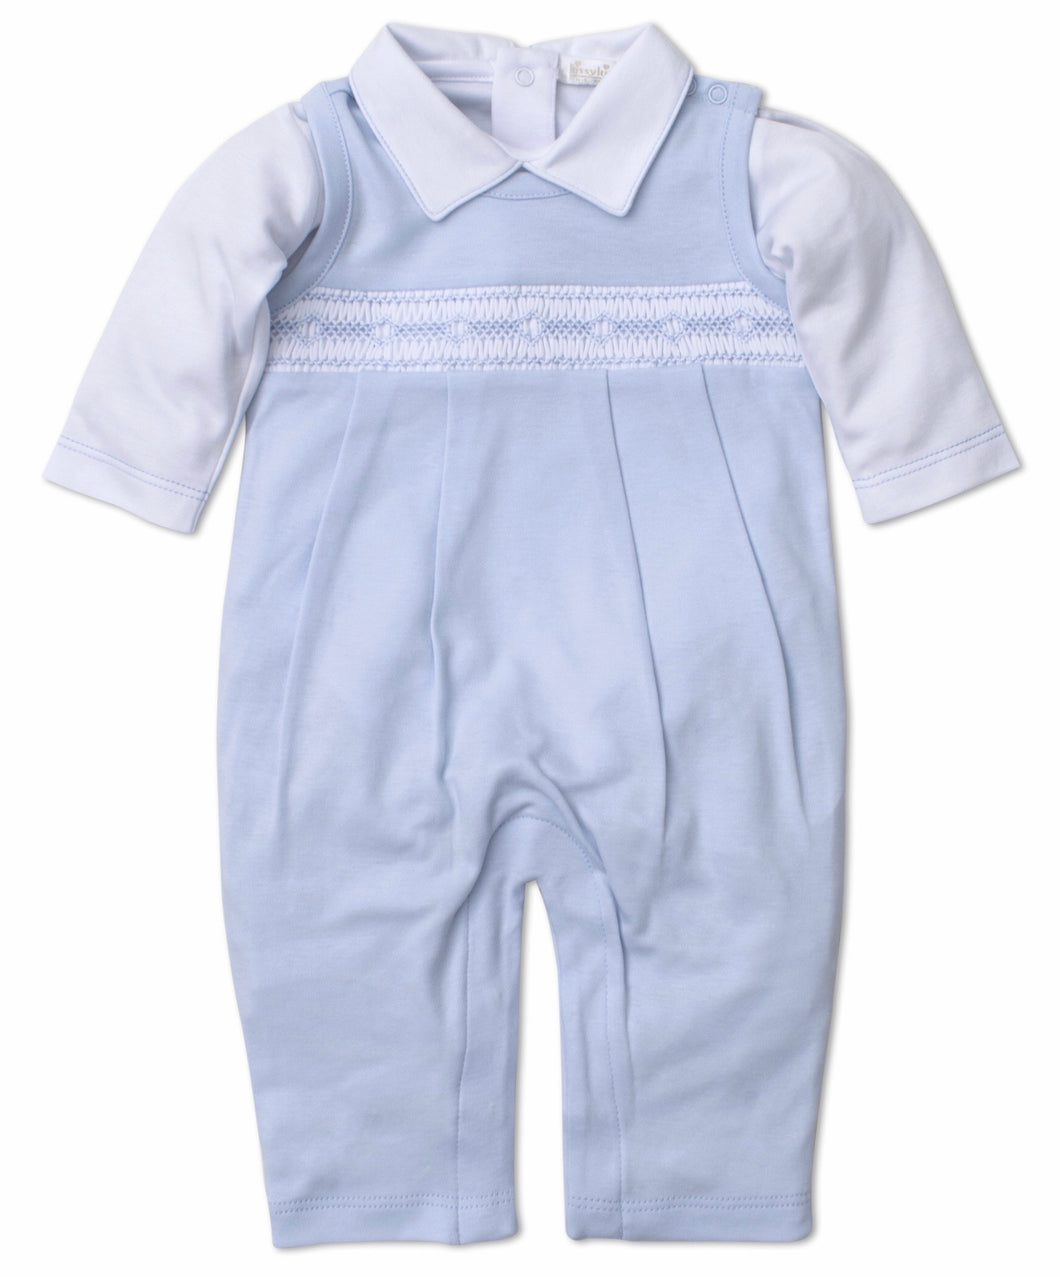 Lt Blue Overall Set w Hand Smocking